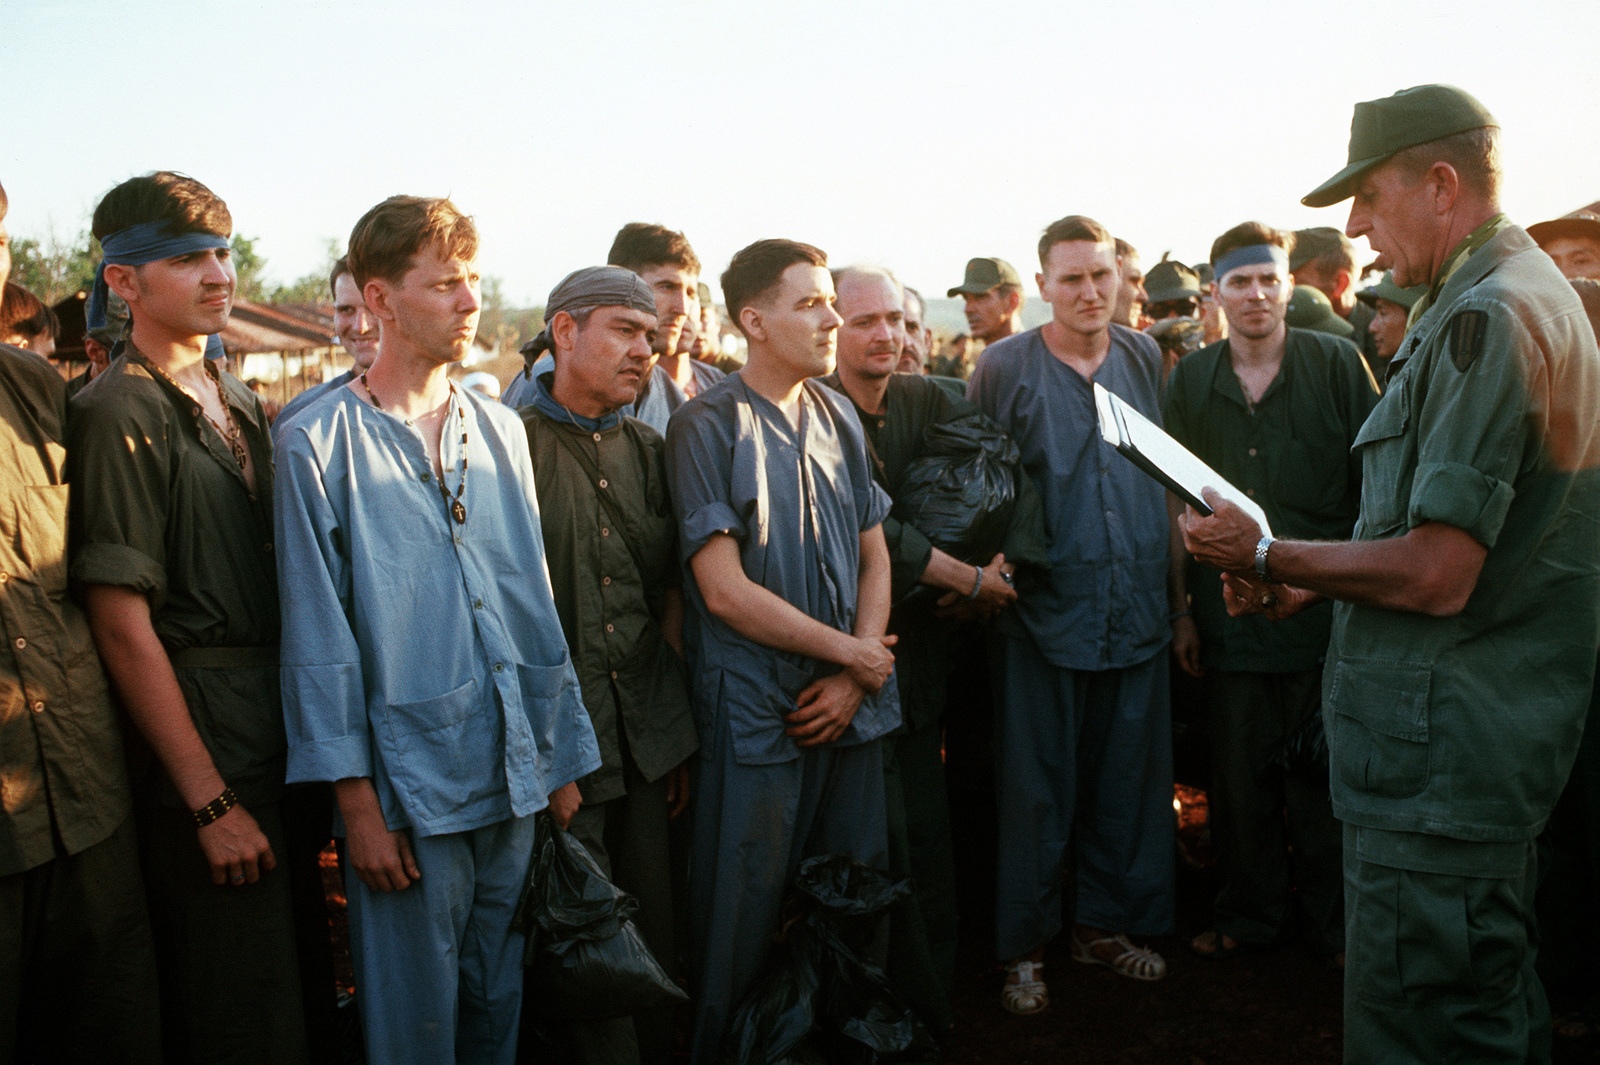 Americans are briefed prior to their release from a prisoner of war camp